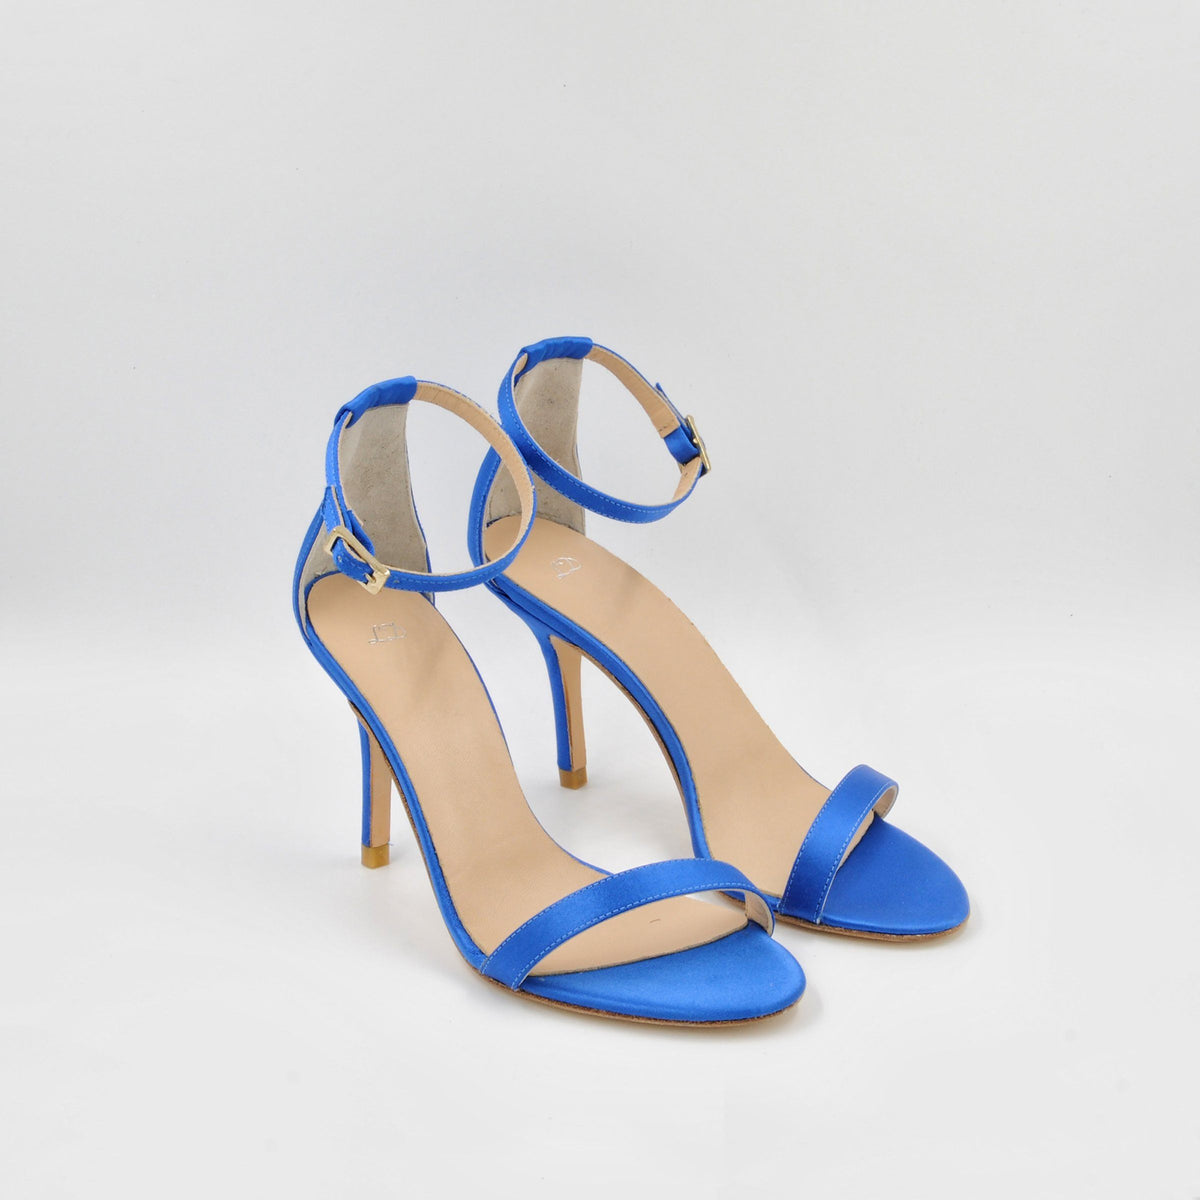 Lola Domecq Alejandra In Blue Hand made wedding satin sandals